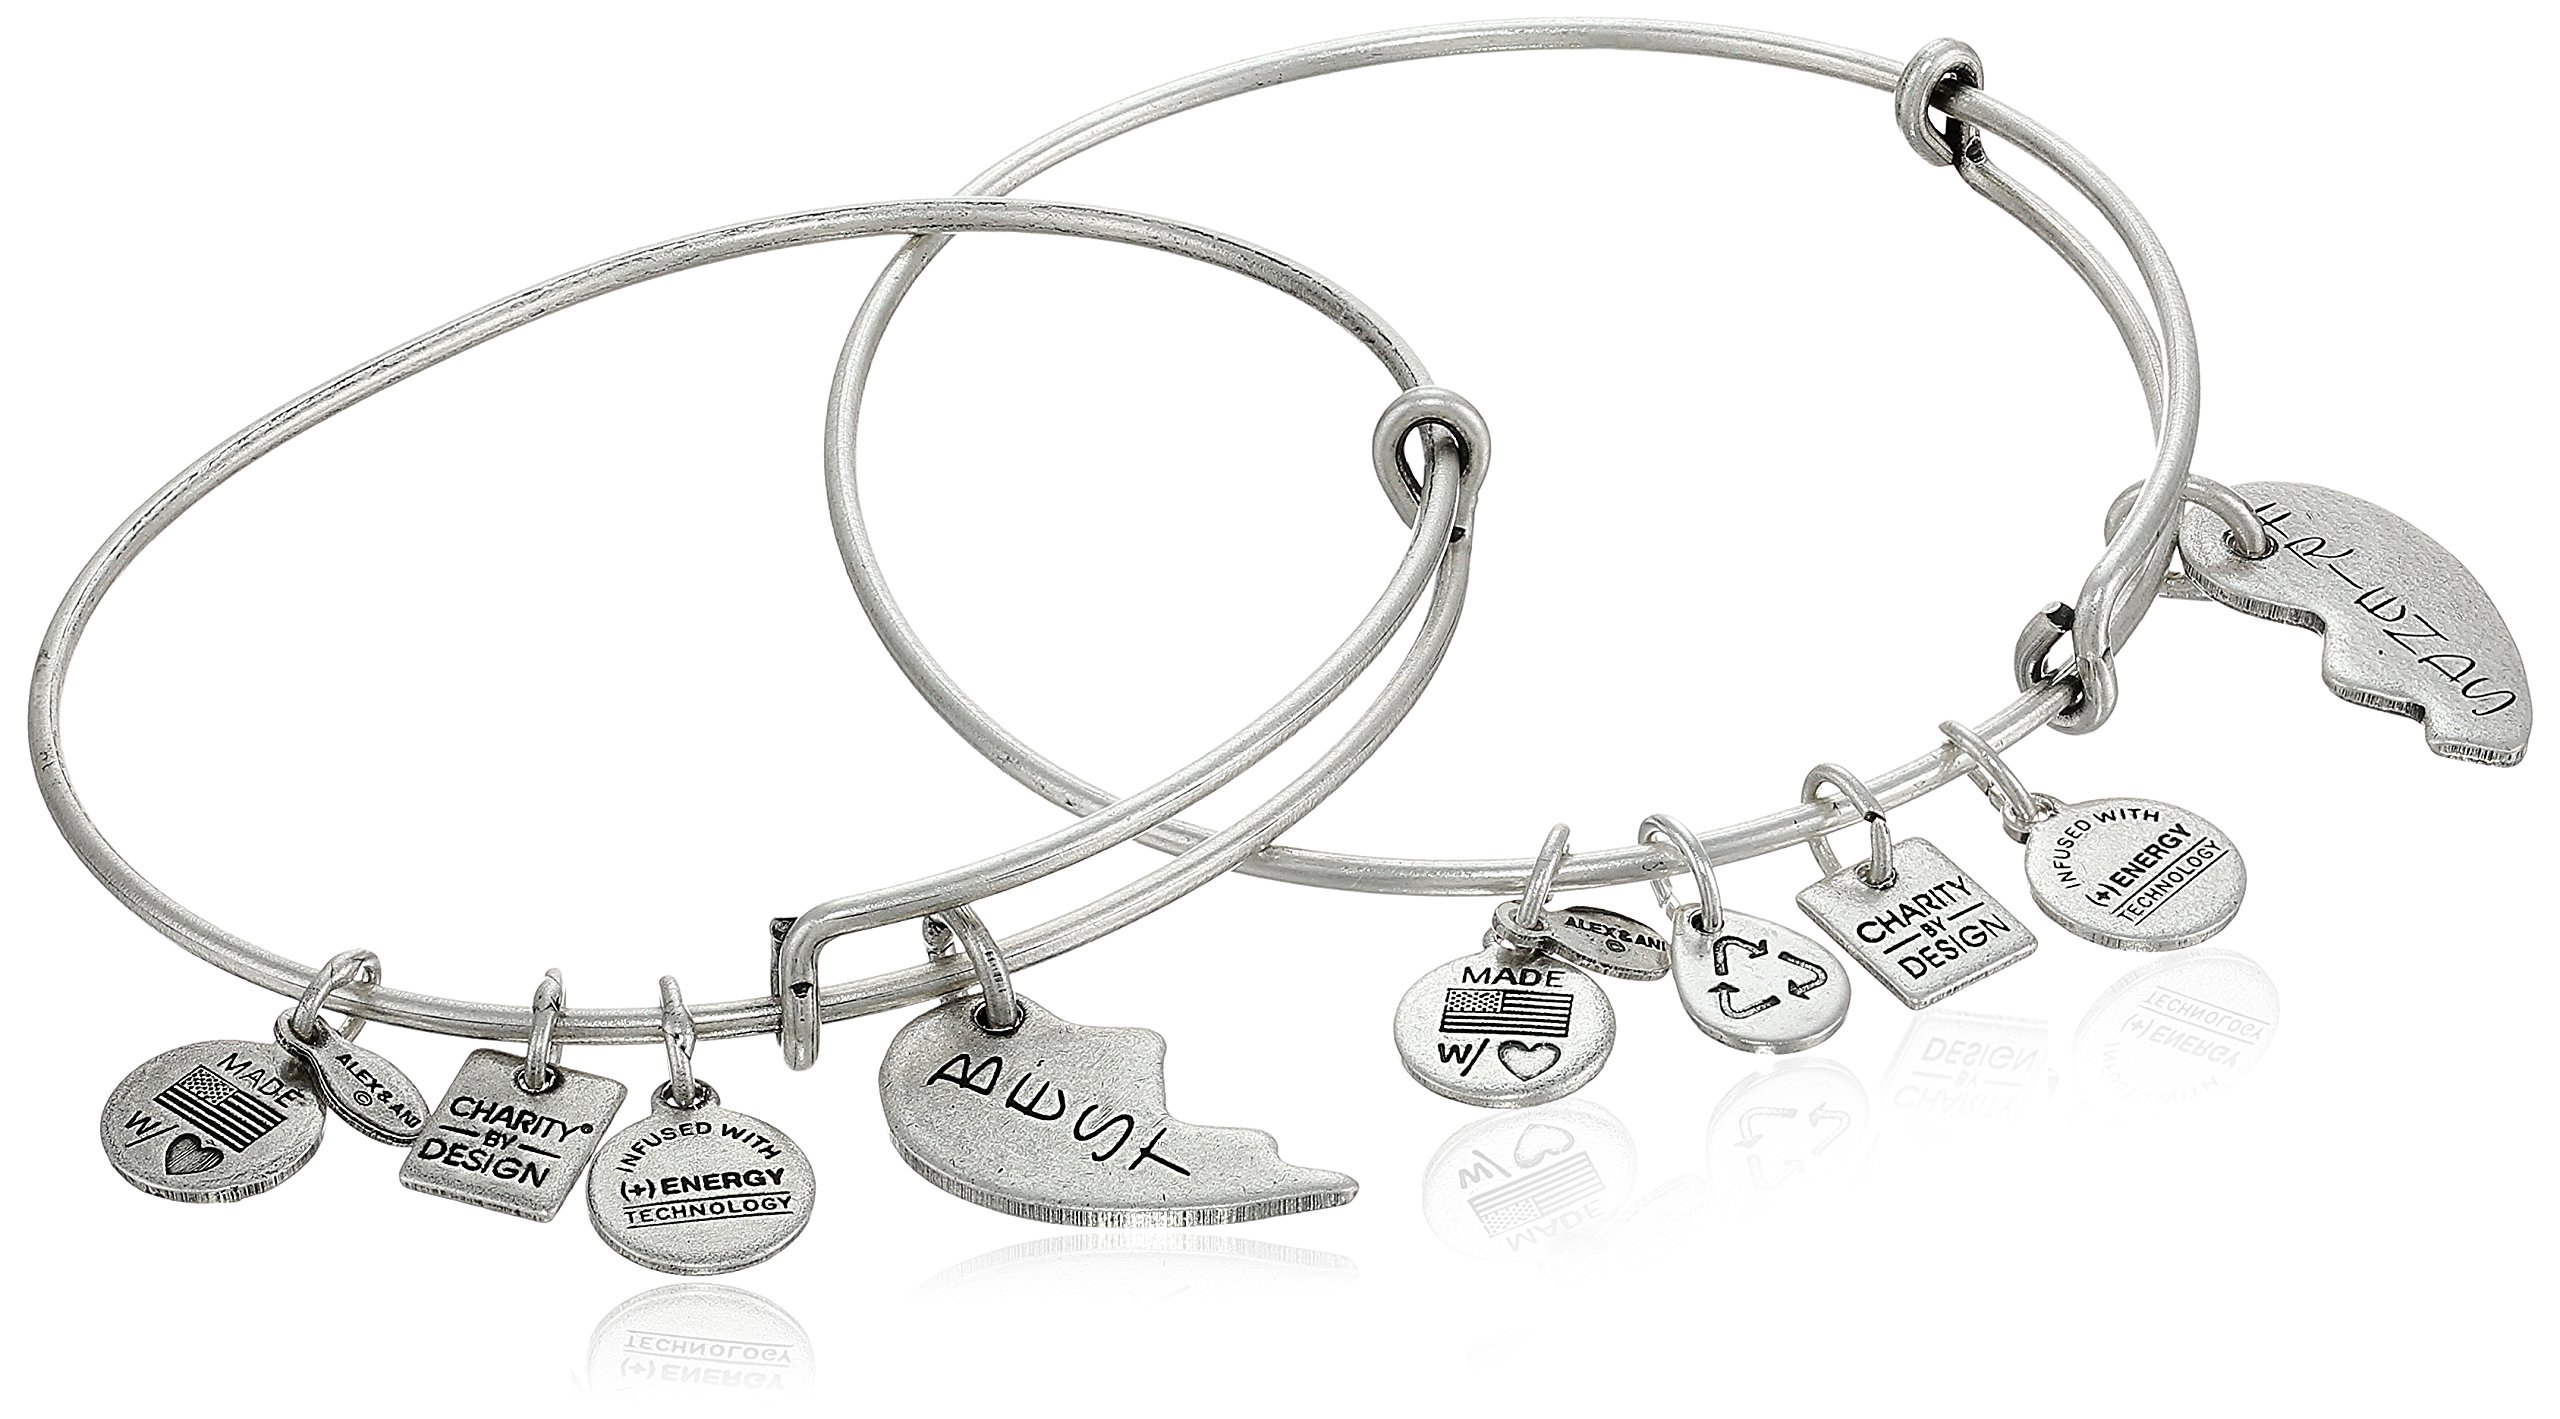 Alex and Ani Charity by Design Best Friends Rafaelian Silver-Tone Bangle Bracelet, Set of 2